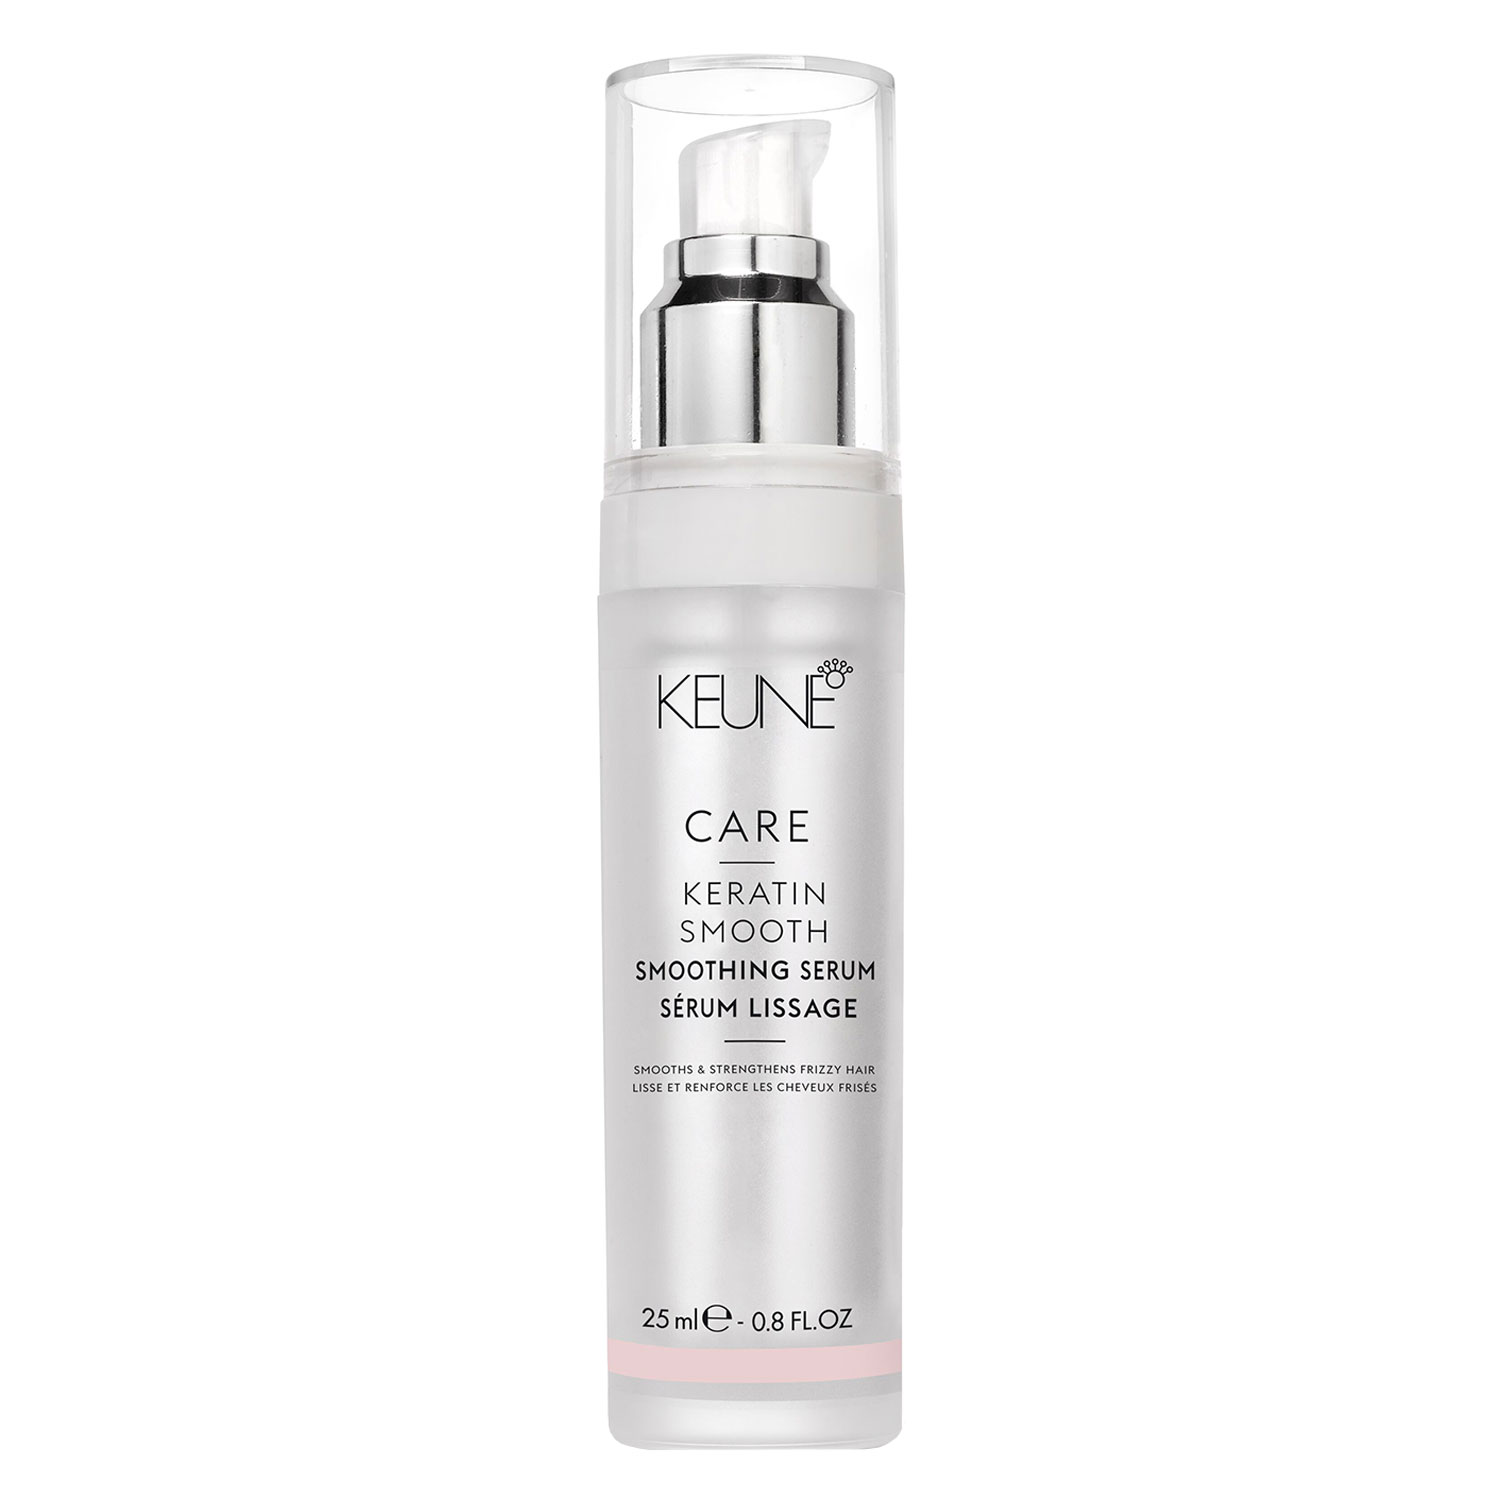 Keune Care - Keratin Smoothing Serum